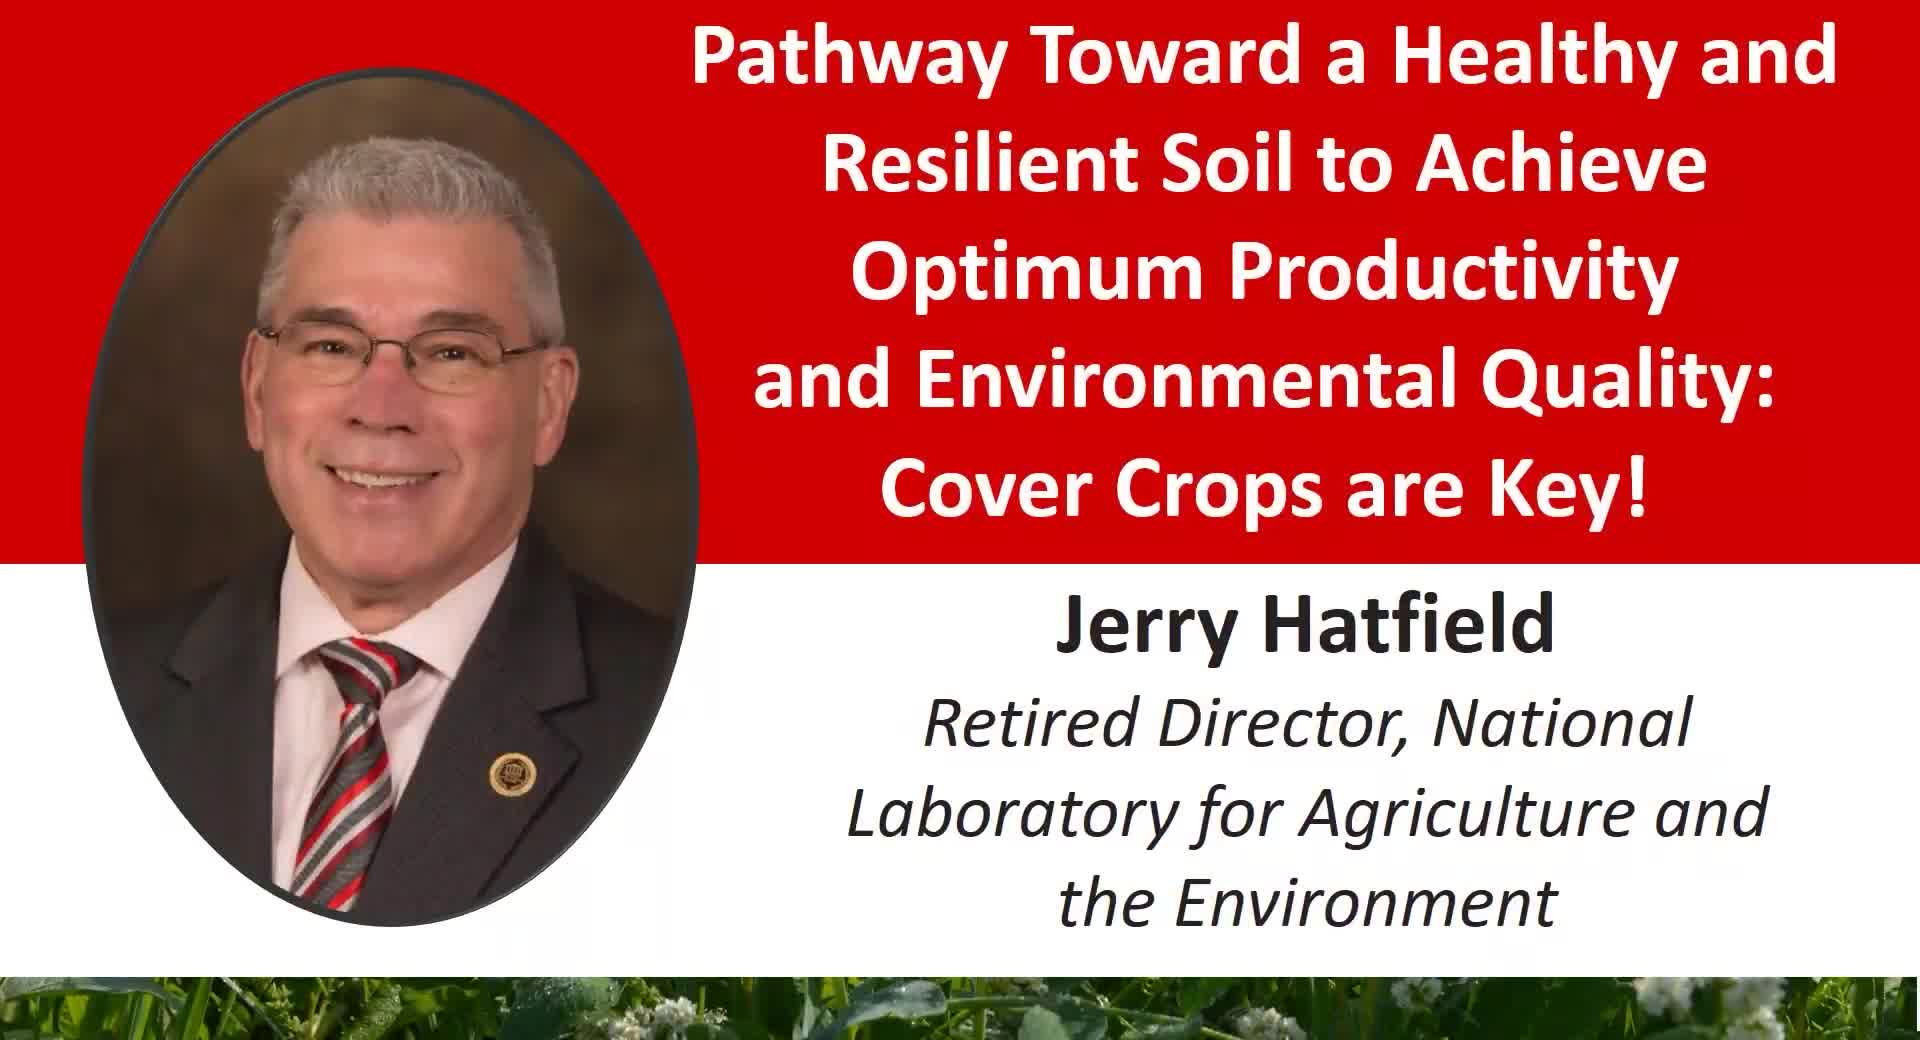 2021 Nebraska Cover Crop and Soil Health Conference - Jerry Hatfield